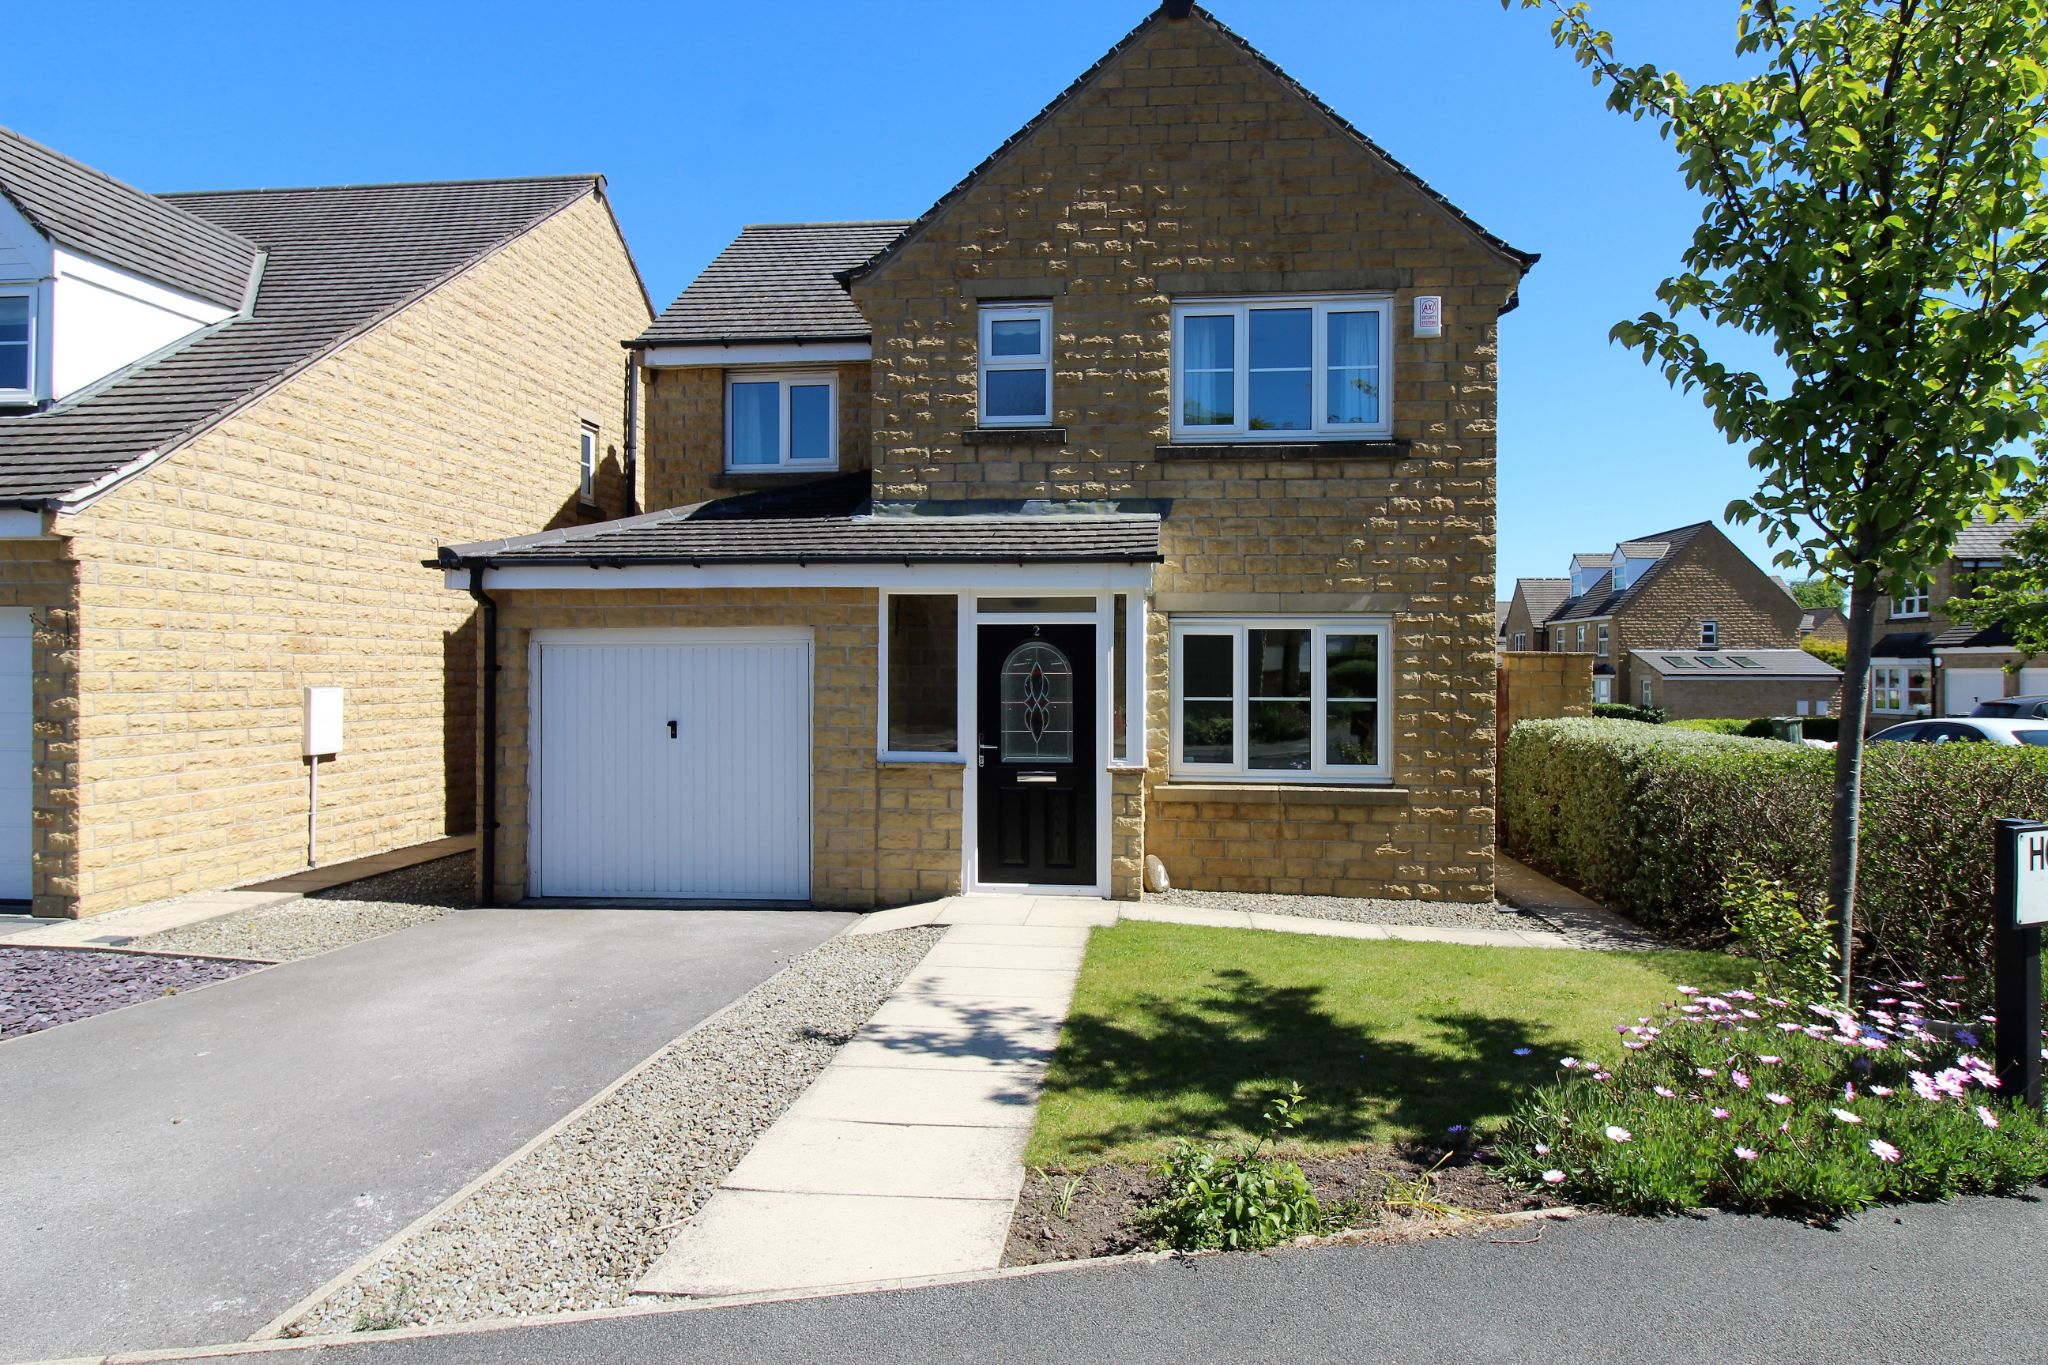 4 bedroom detached house For Sale in Halifax - Photograph 22